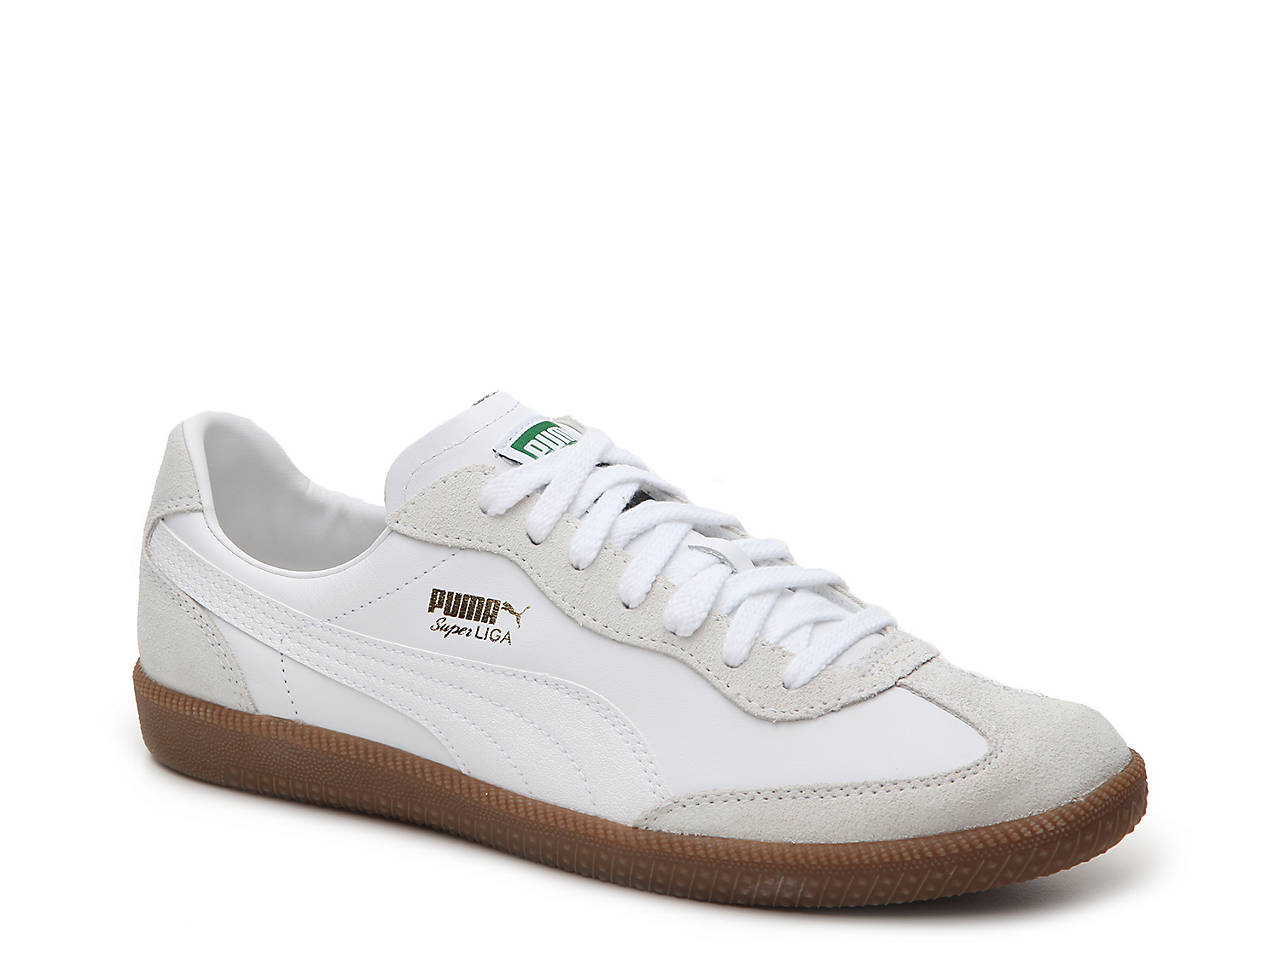 66a429e0cb02f4 Puma Super Liga OG Retro Sneaker - Men's Men's Shoes | DSW